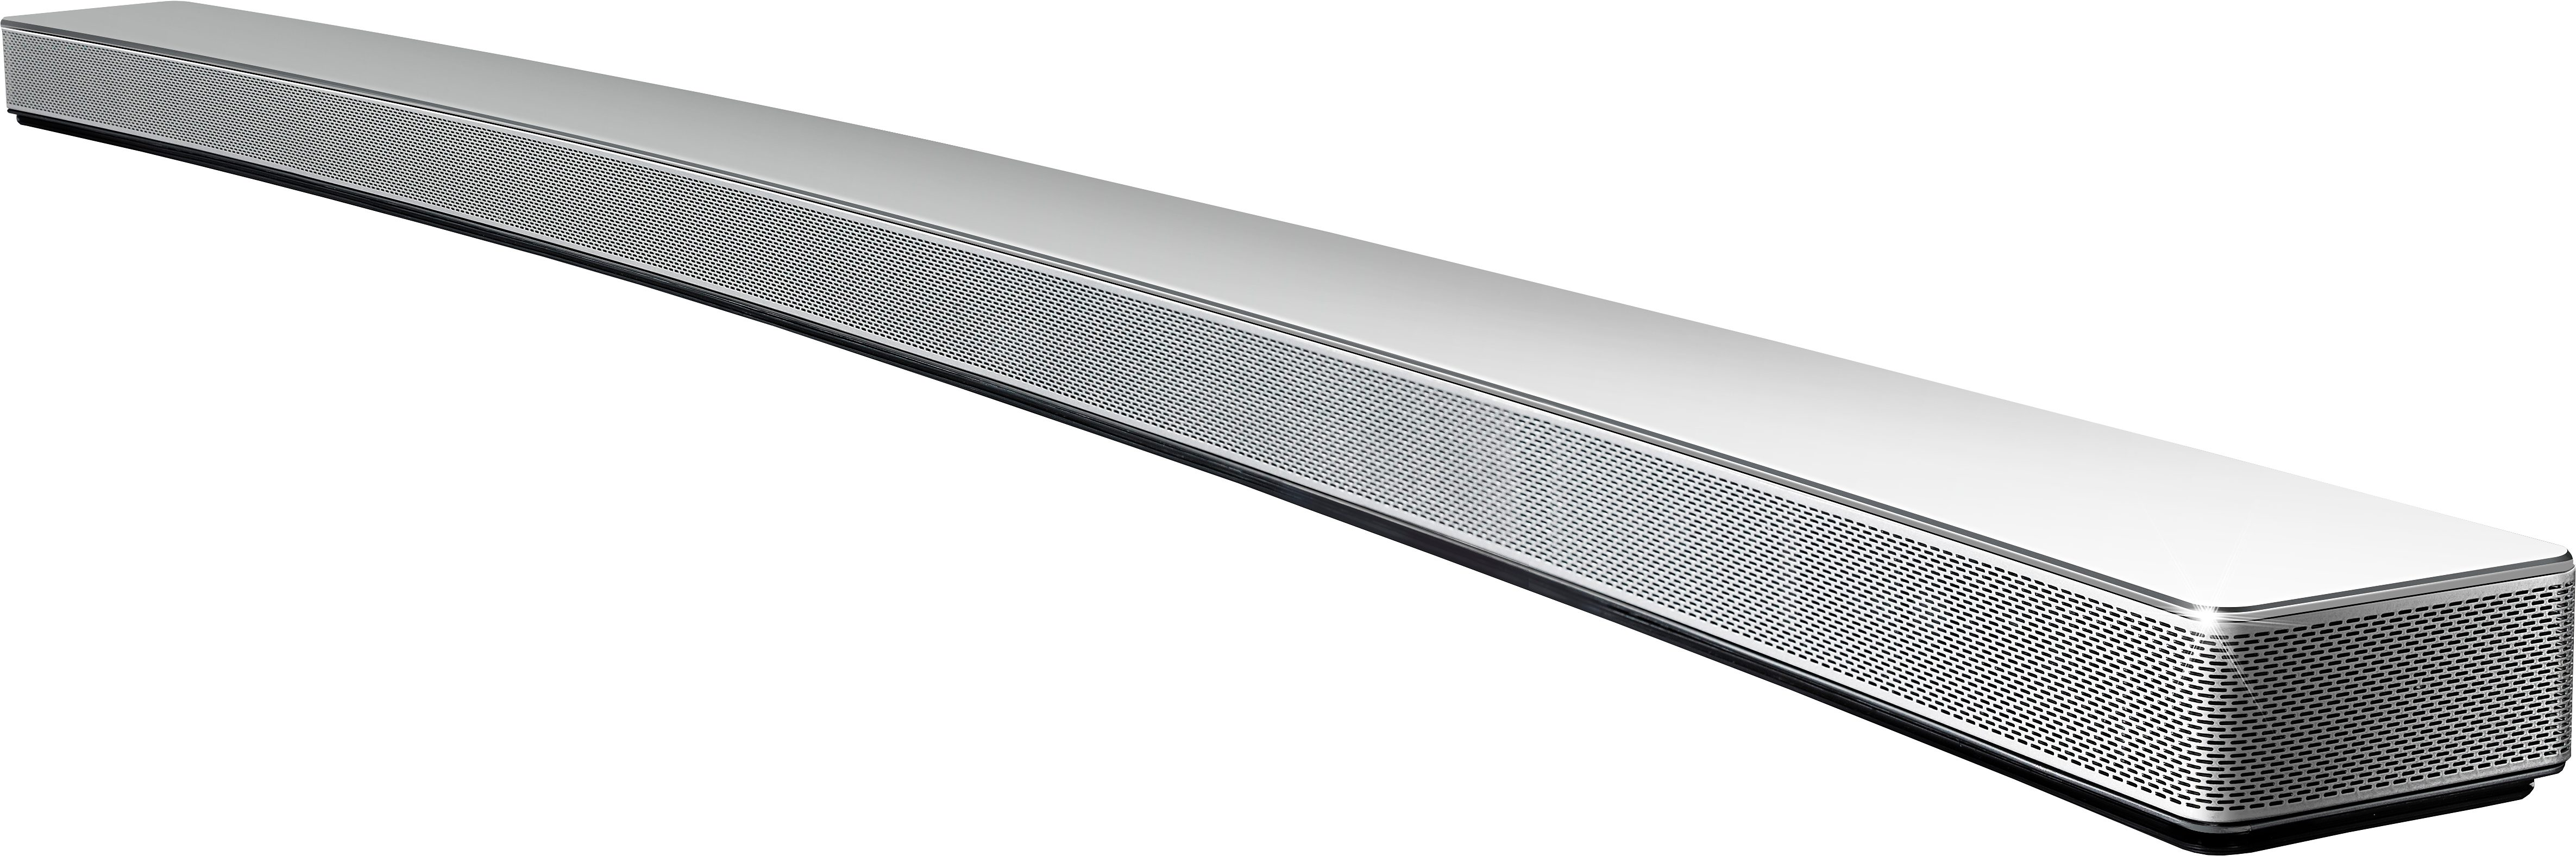 LG Music Flow LAC950M (HS7) Soundbar, Bluetooth, Multiroom